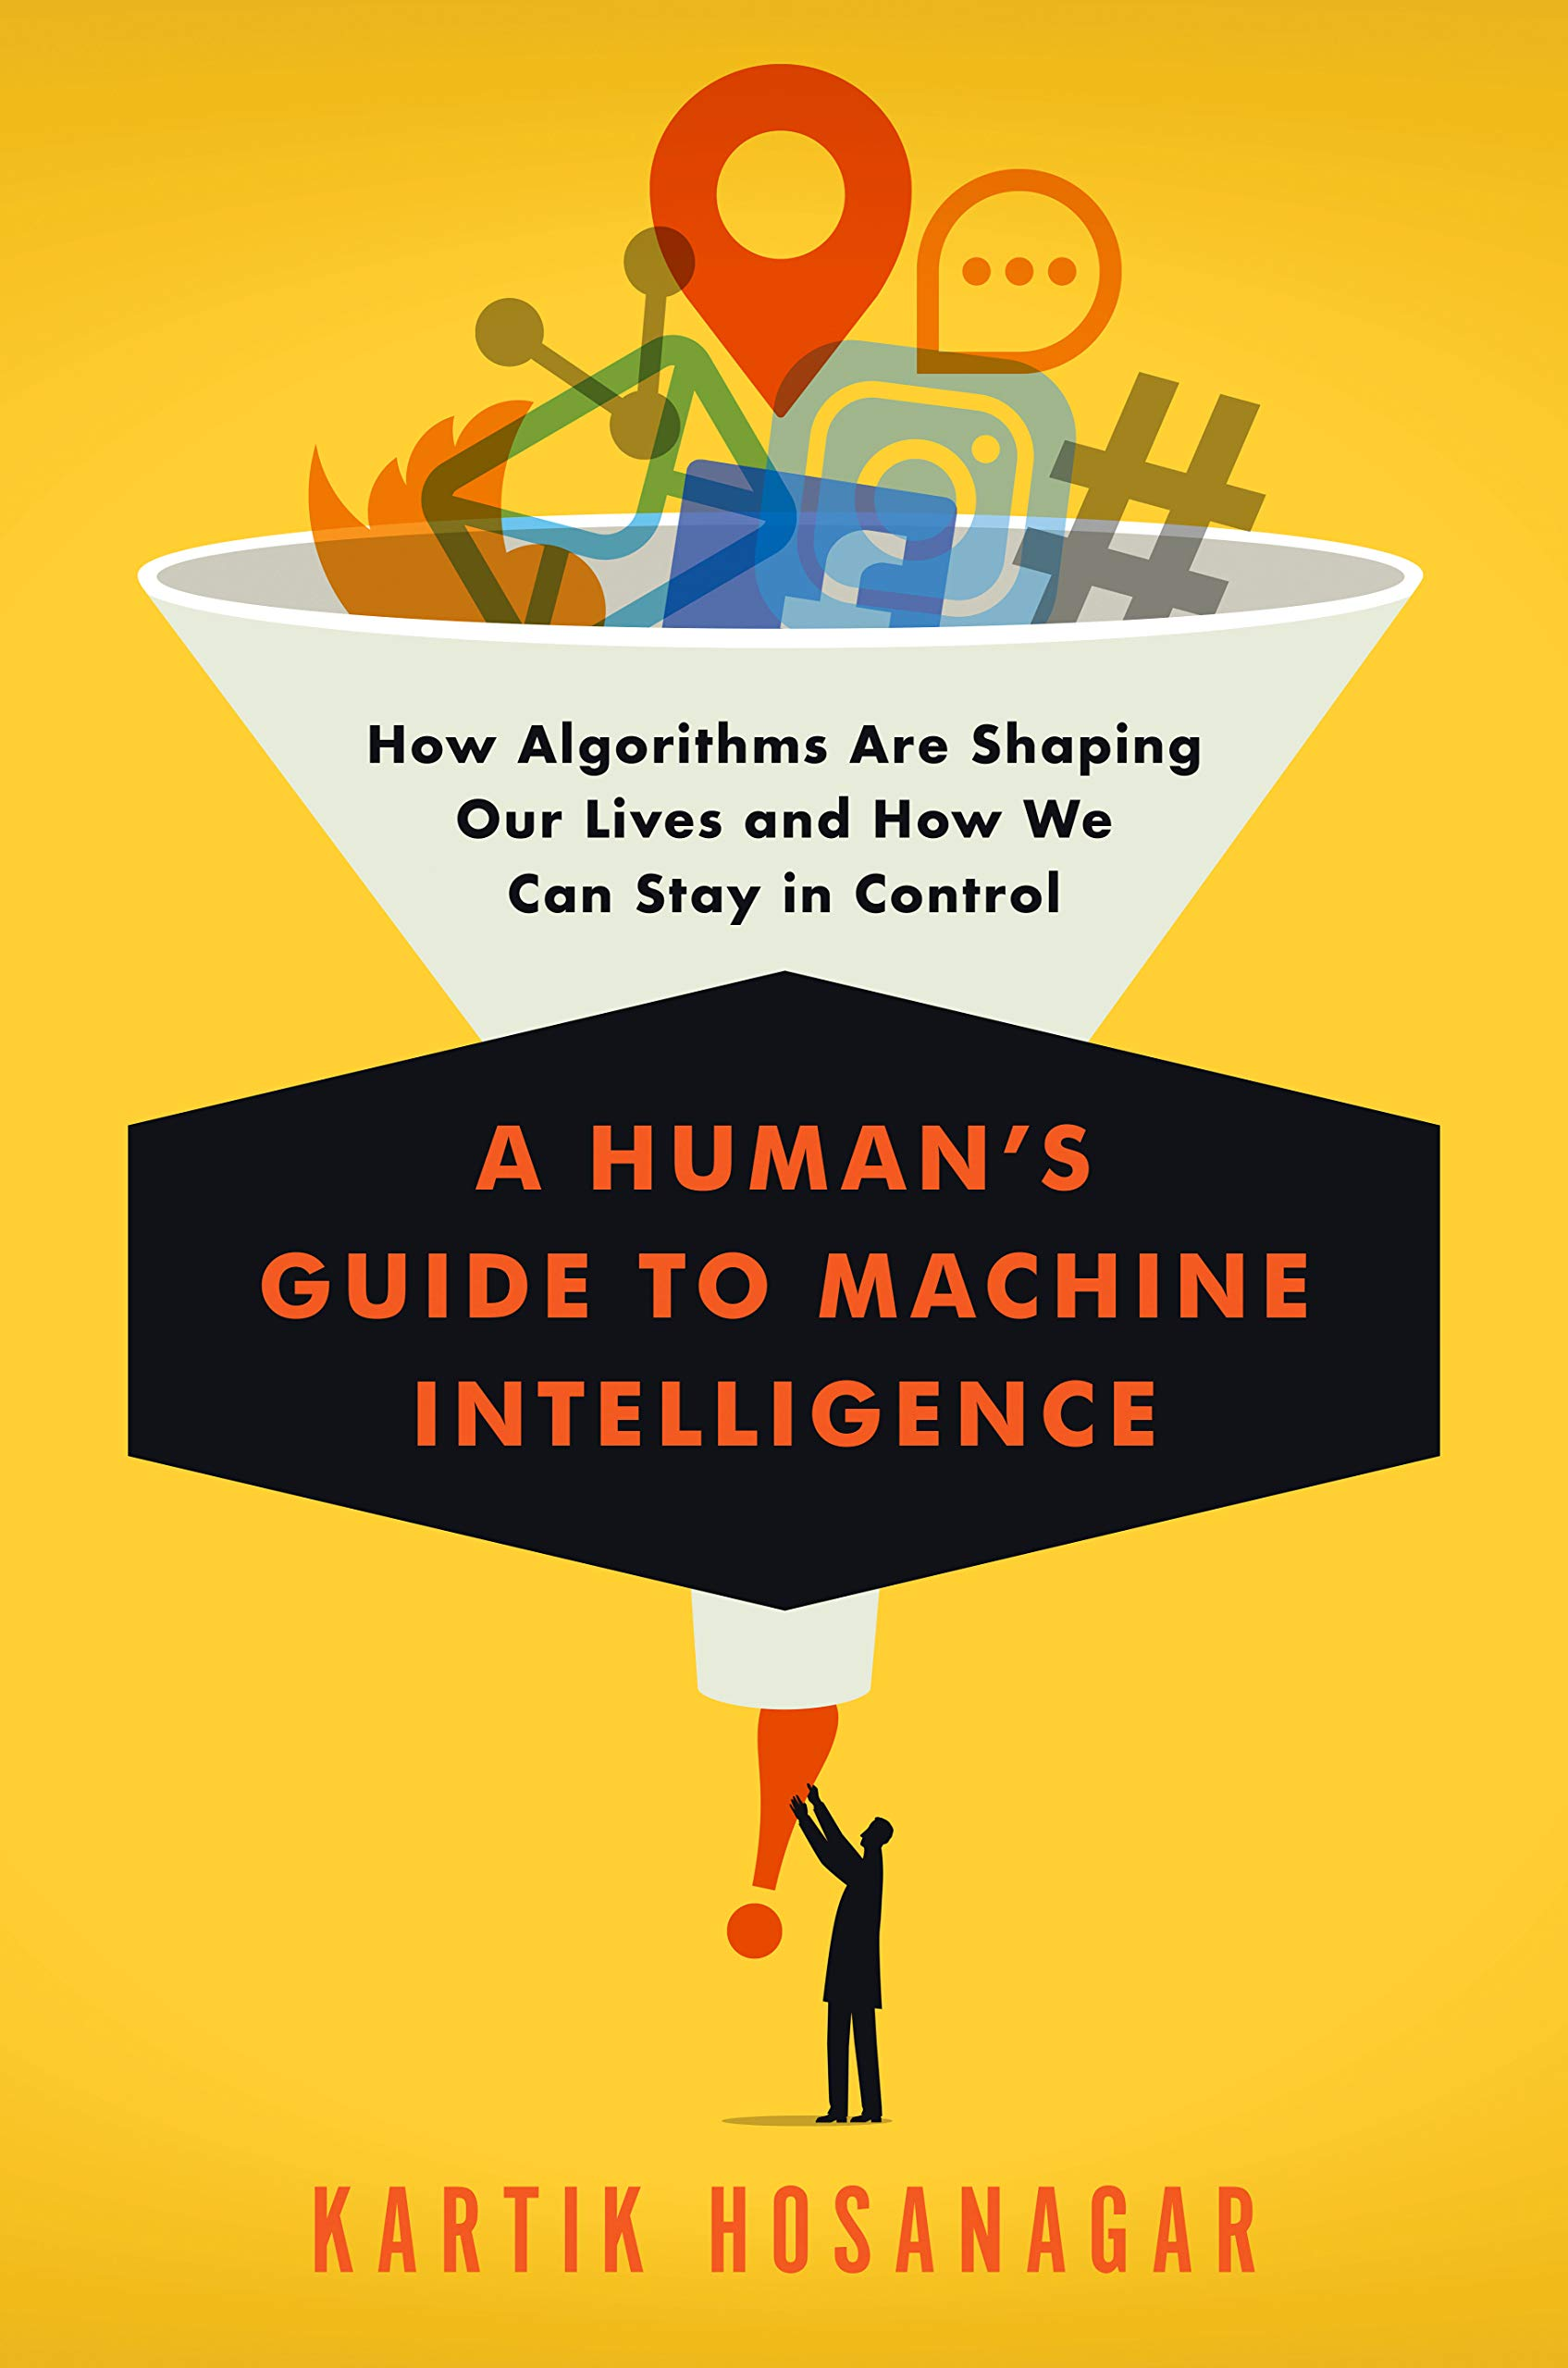 Image result for a human's guide to machine intelligence